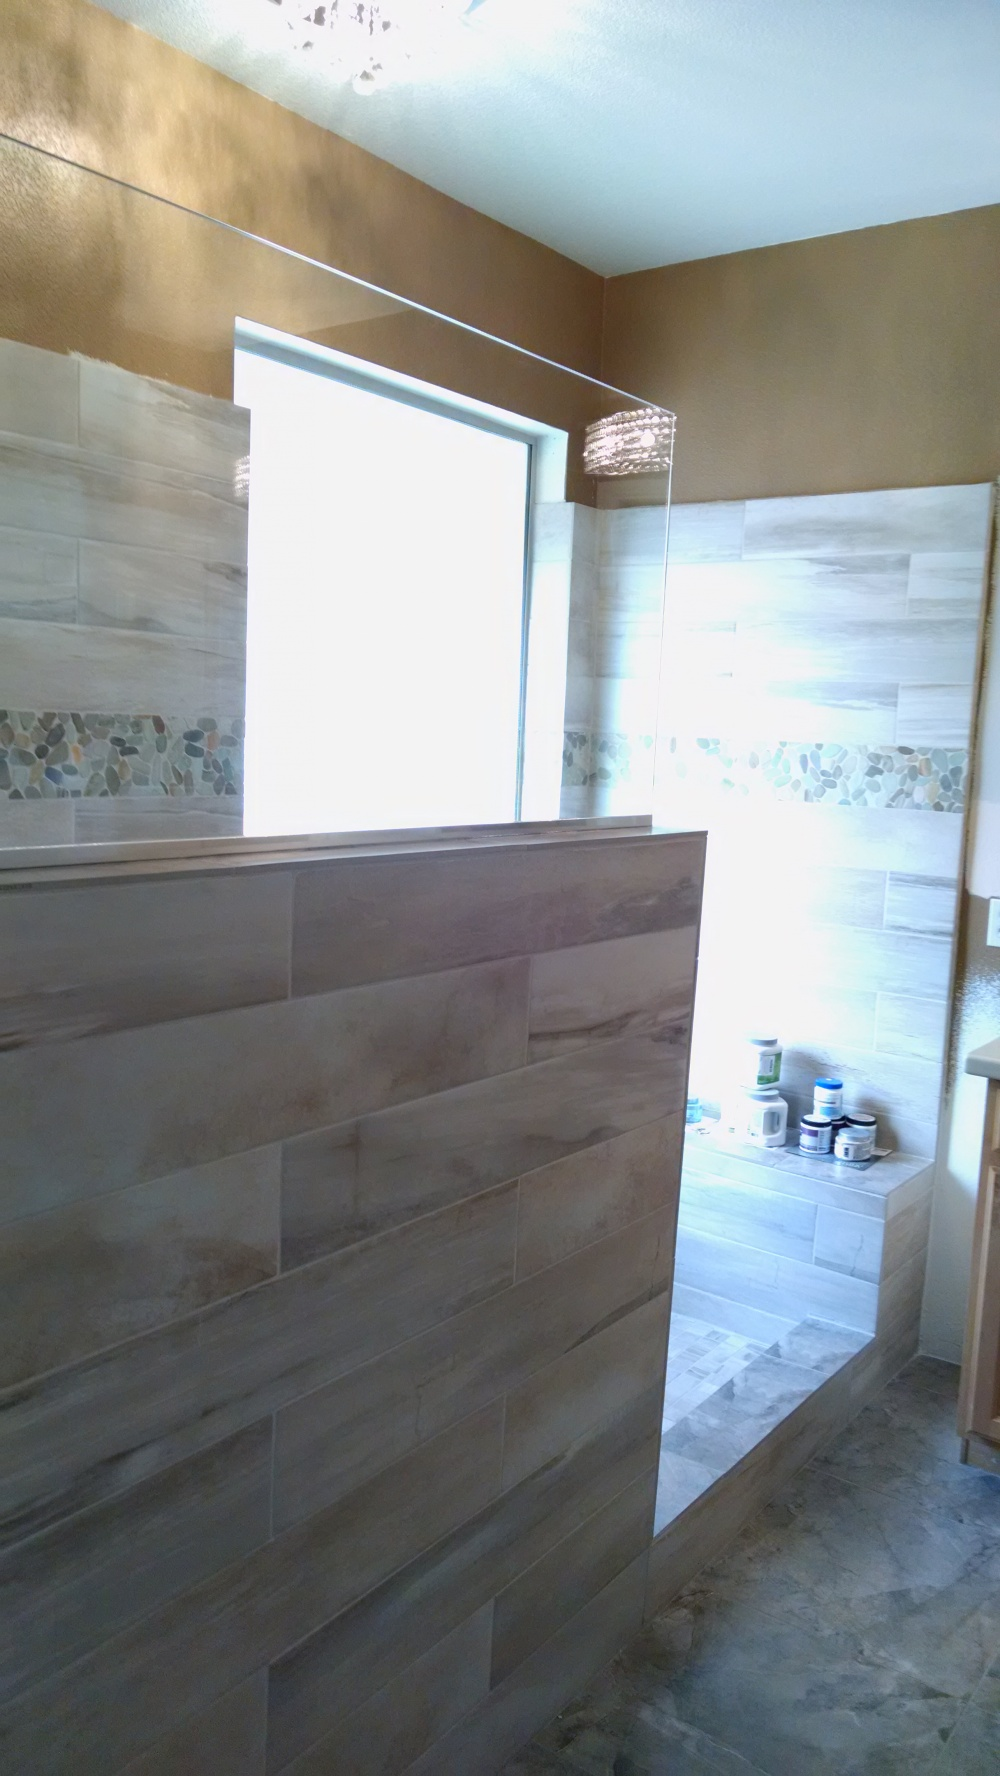 Bathroom Remodeling Phoenix Bathroom Remodel Cave Creek Az  Champion Remodeling Llc.